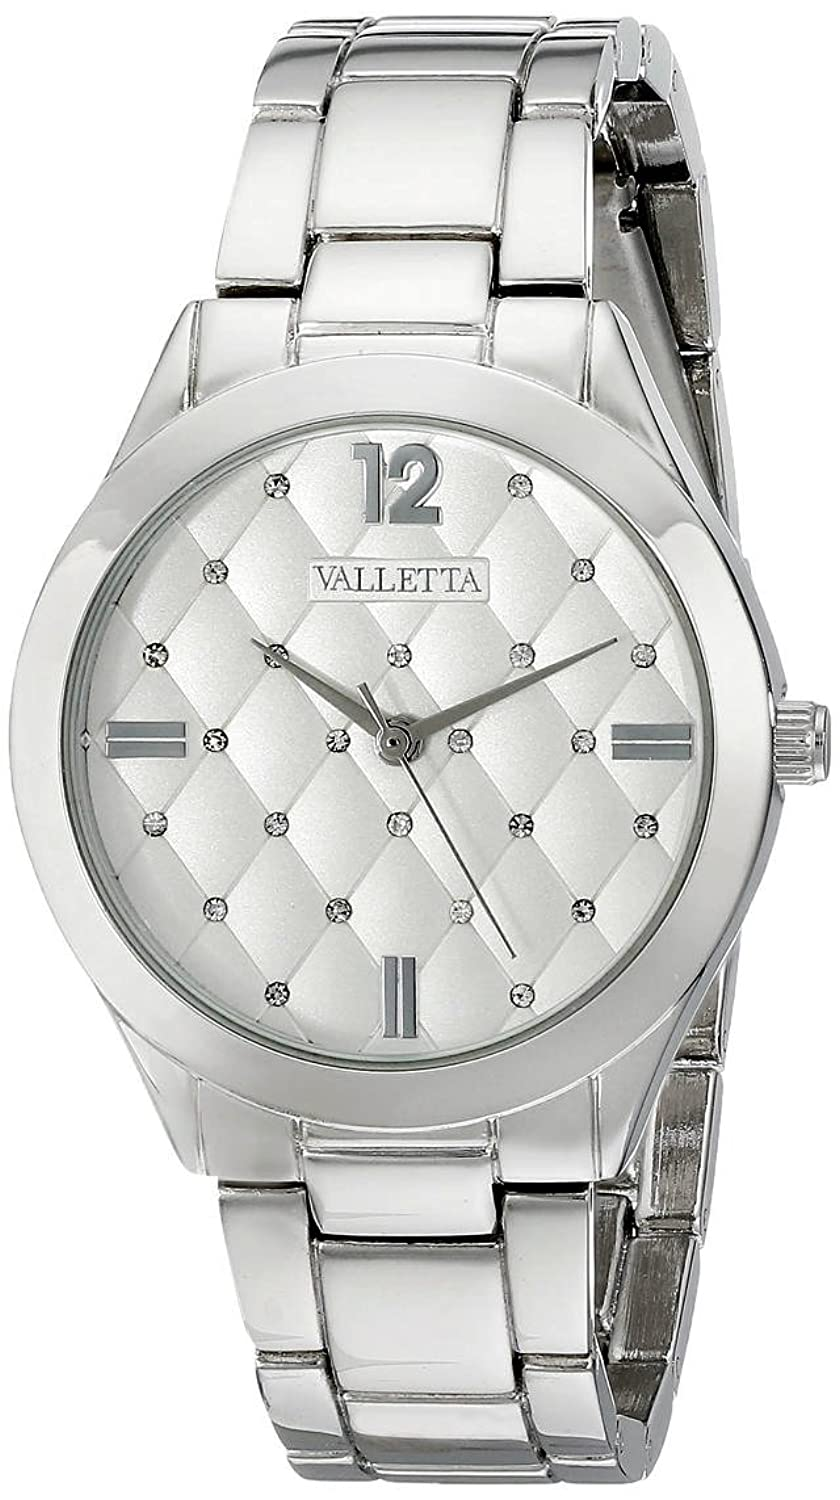 Amazon.com: Valletta Womens FMDCT502A Silver-Tone Watch with Link Bracelet: Watches